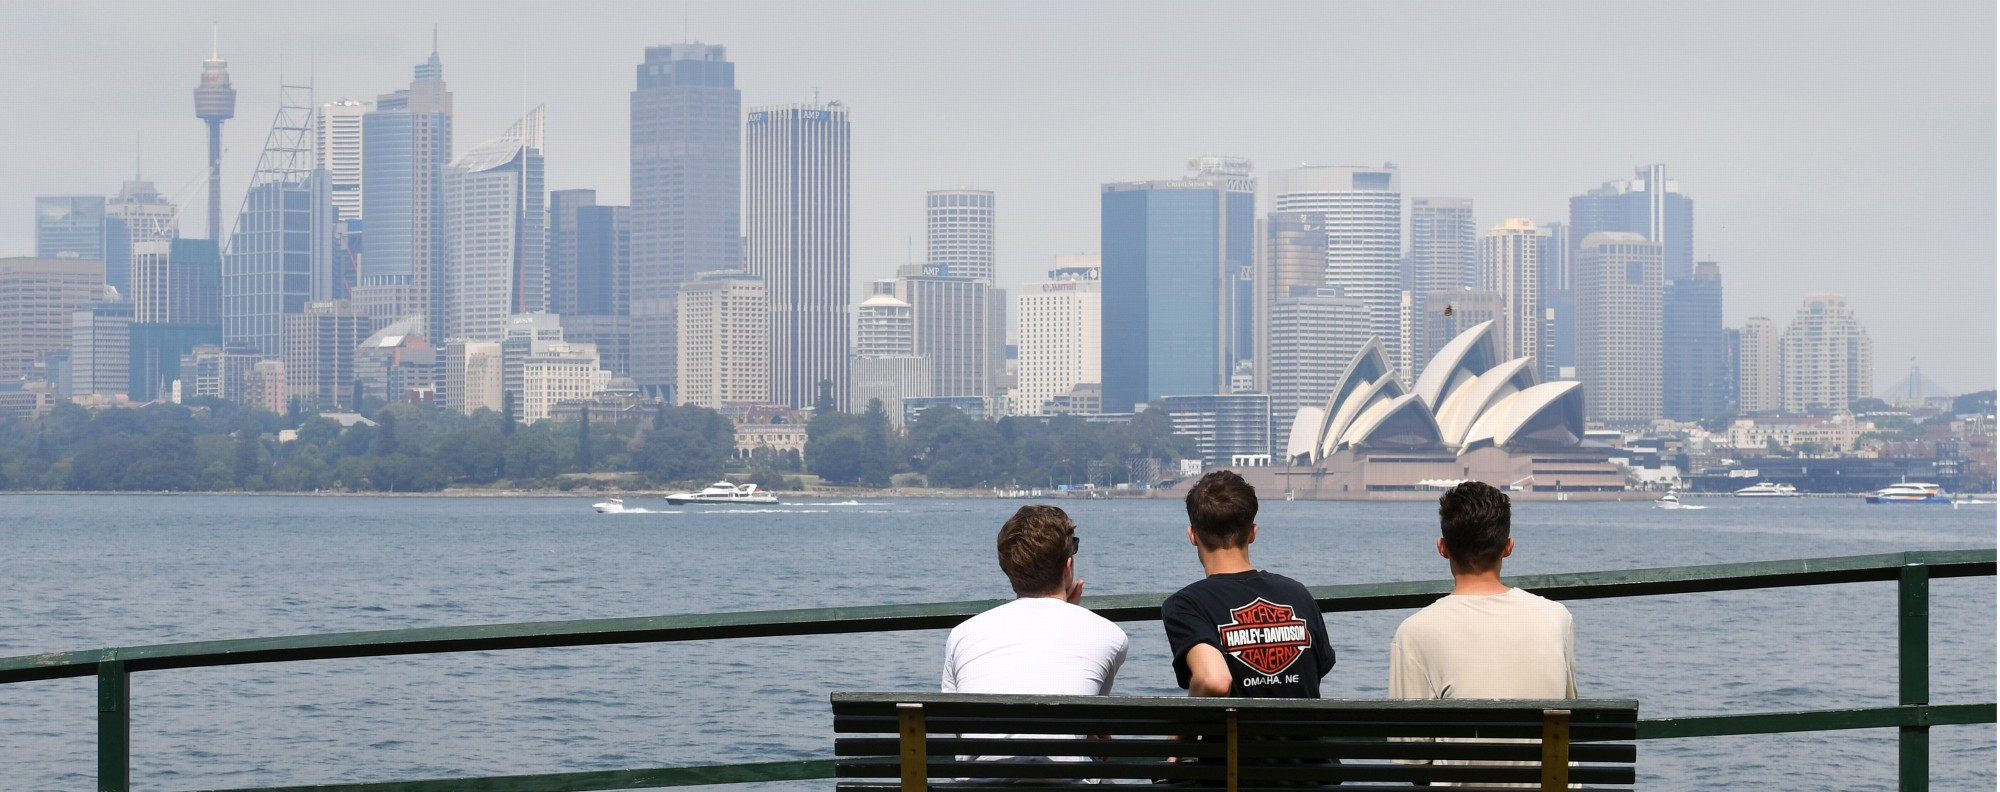 The Sydney skyline. Photo: AFP